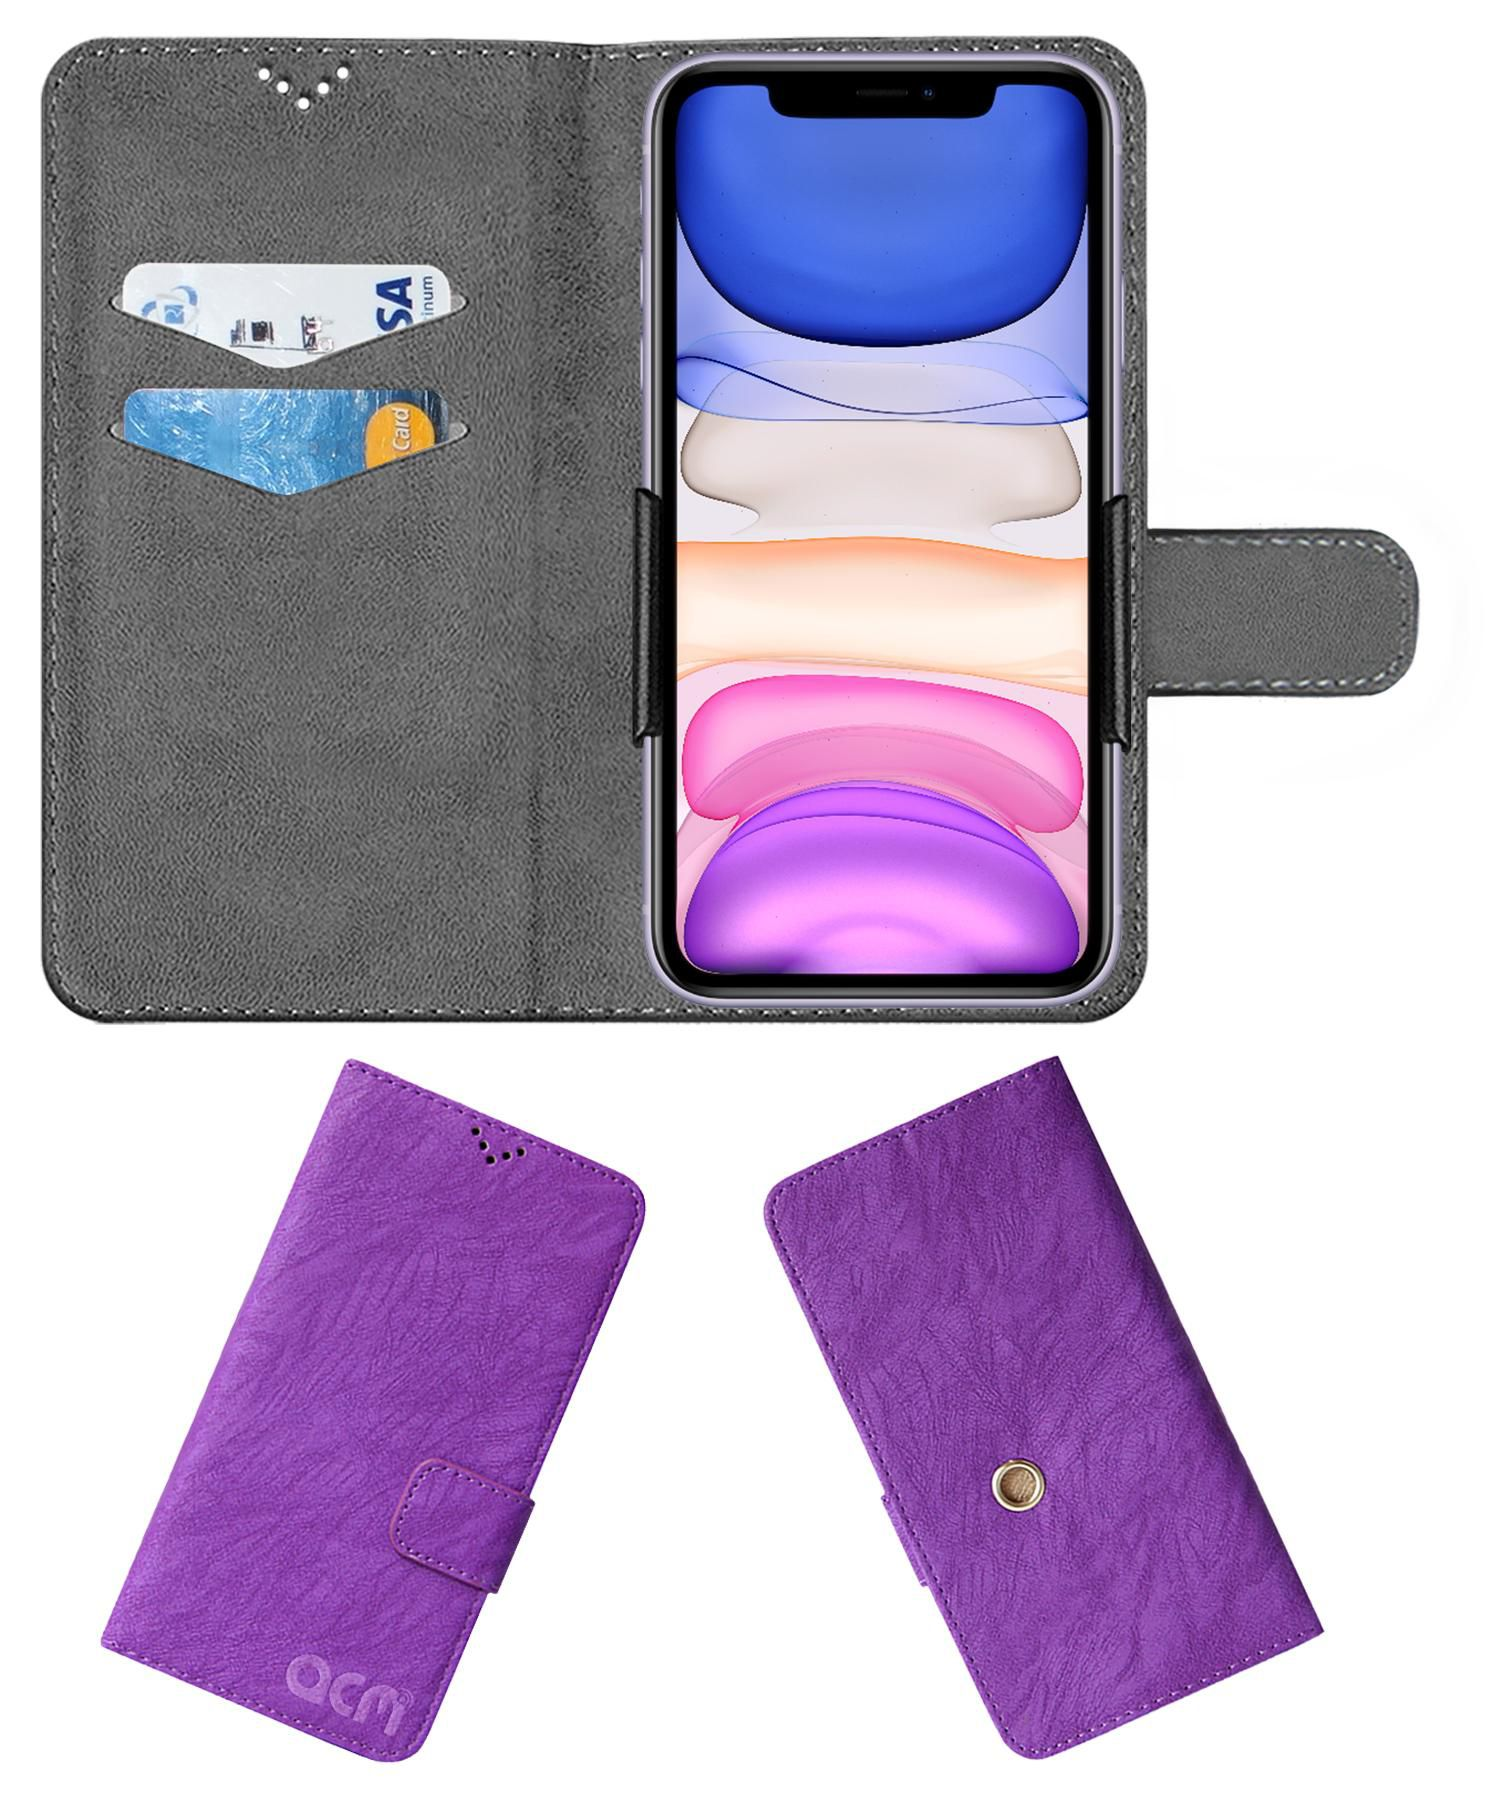 Apple Iphone 11 Flip Cover by ACM - Purple Clip holder to hold your mobile securely